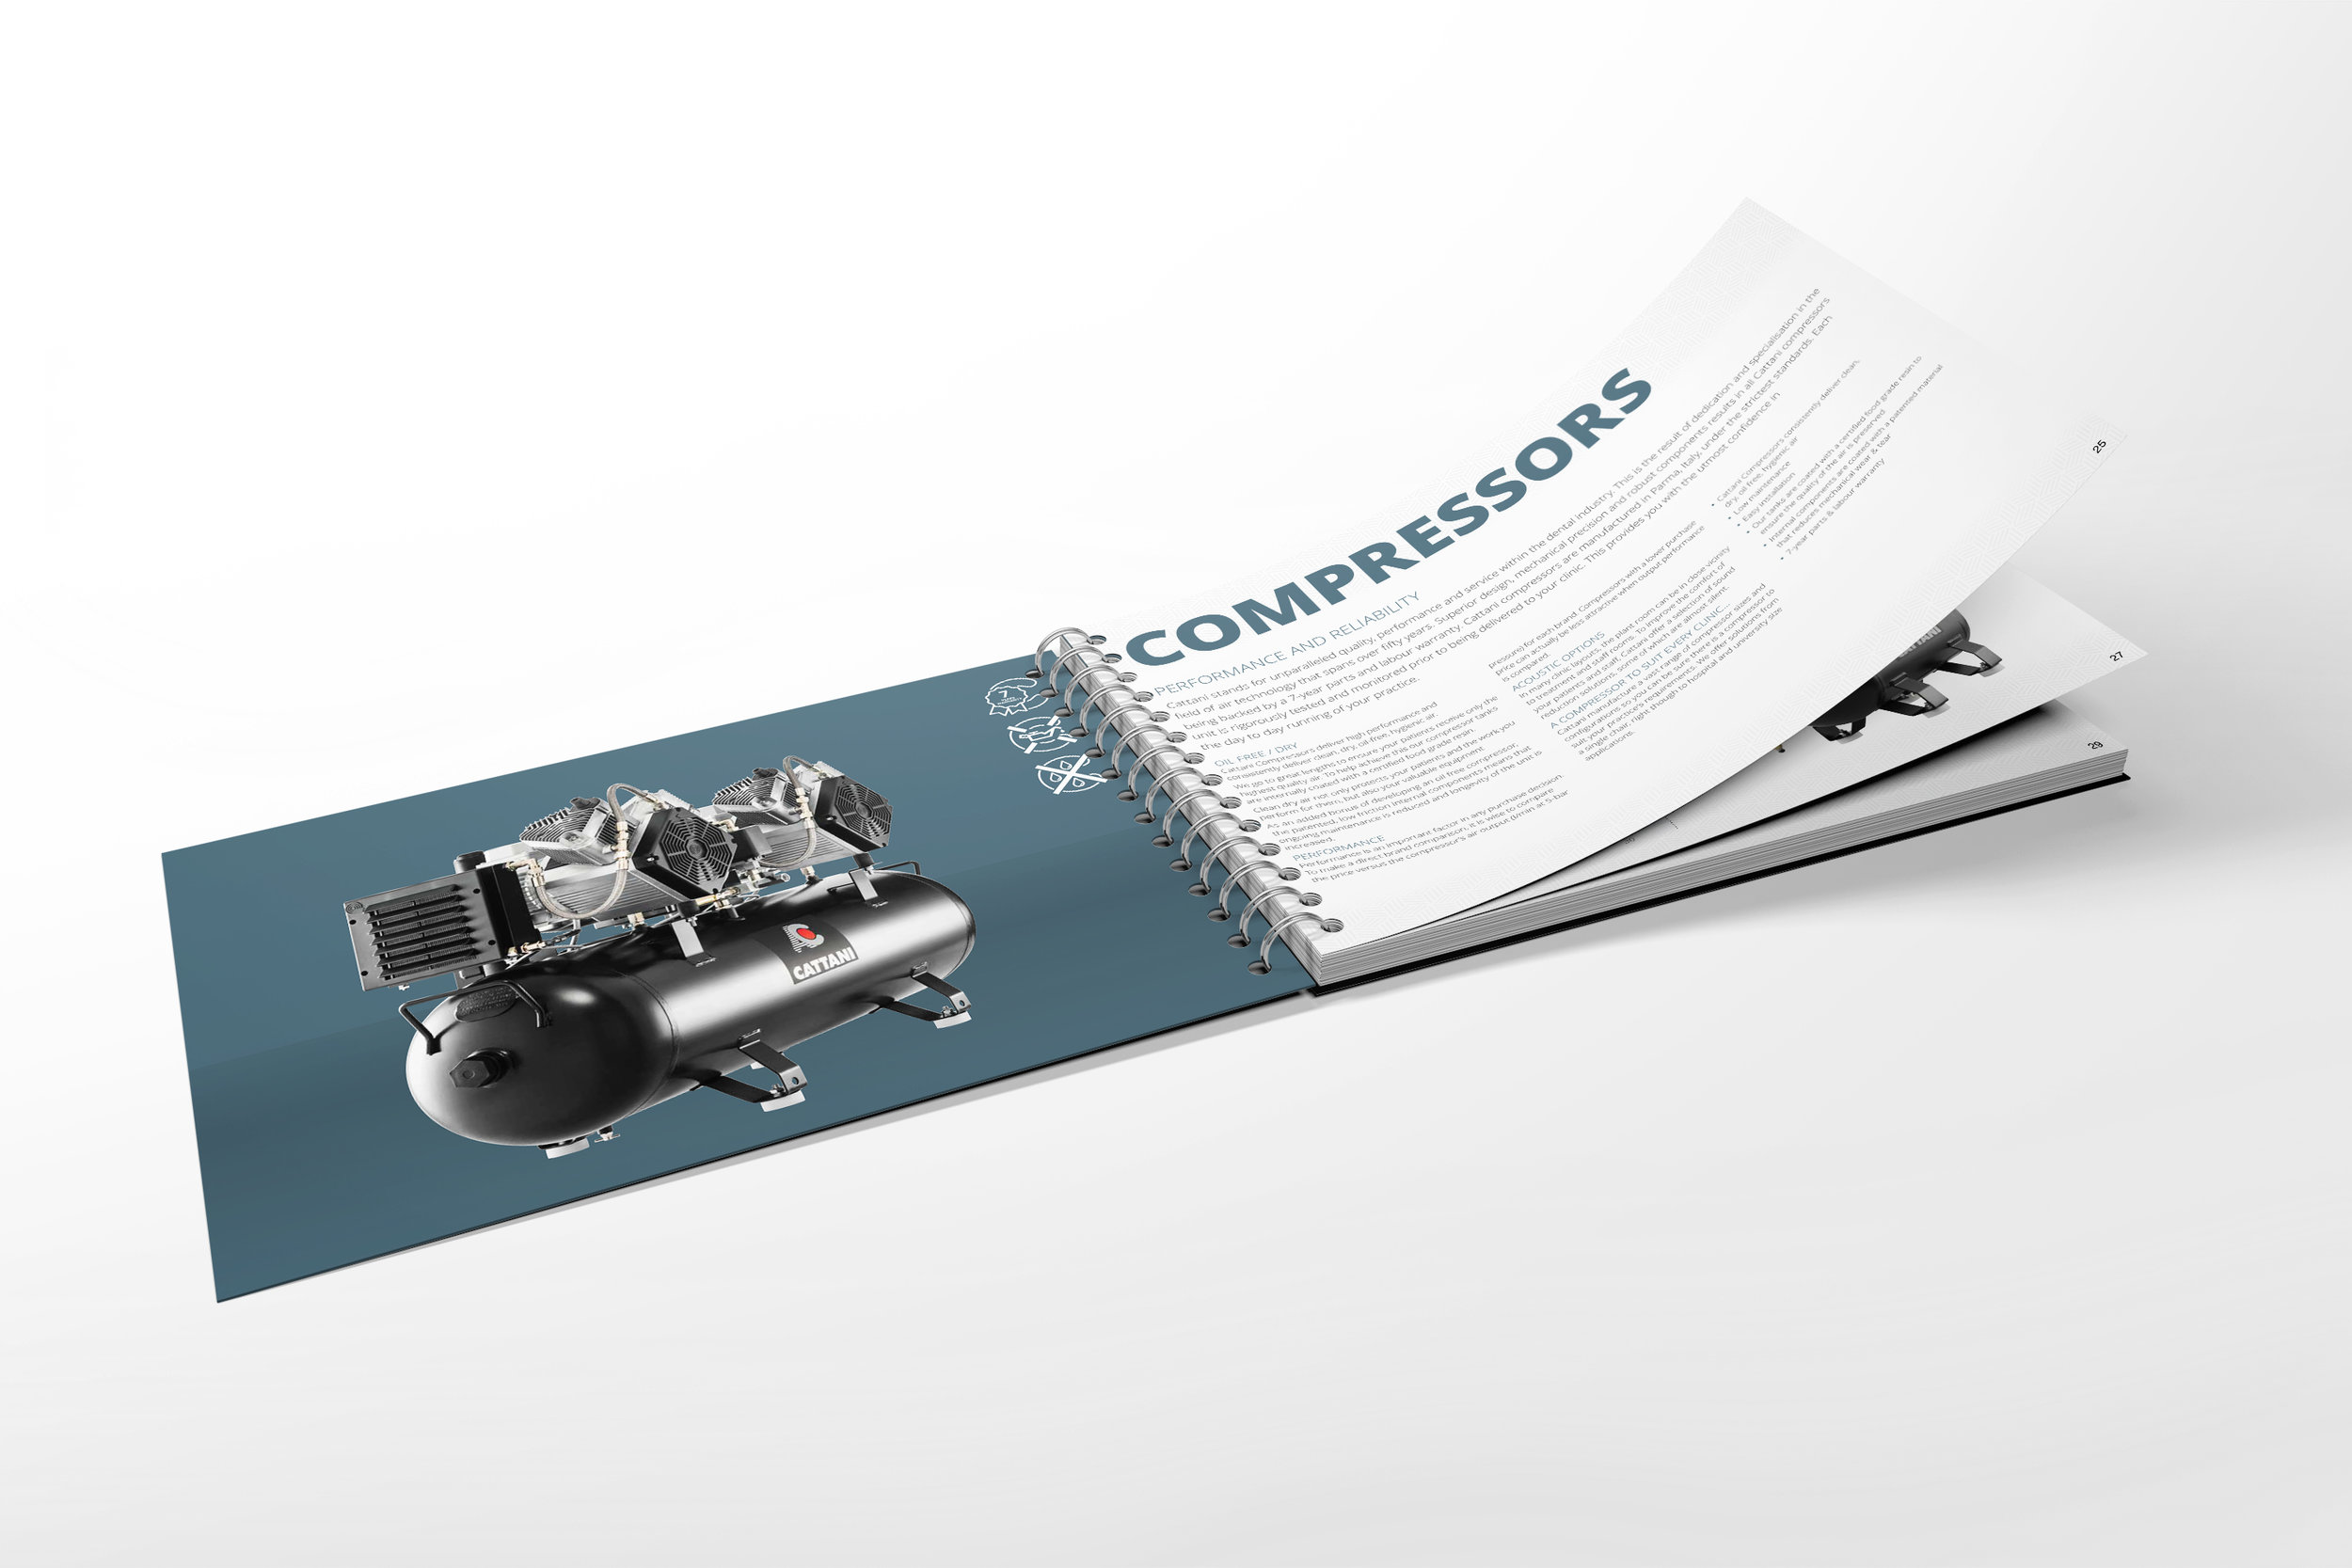 cattani brochure spread compressors lifted v2.jpg